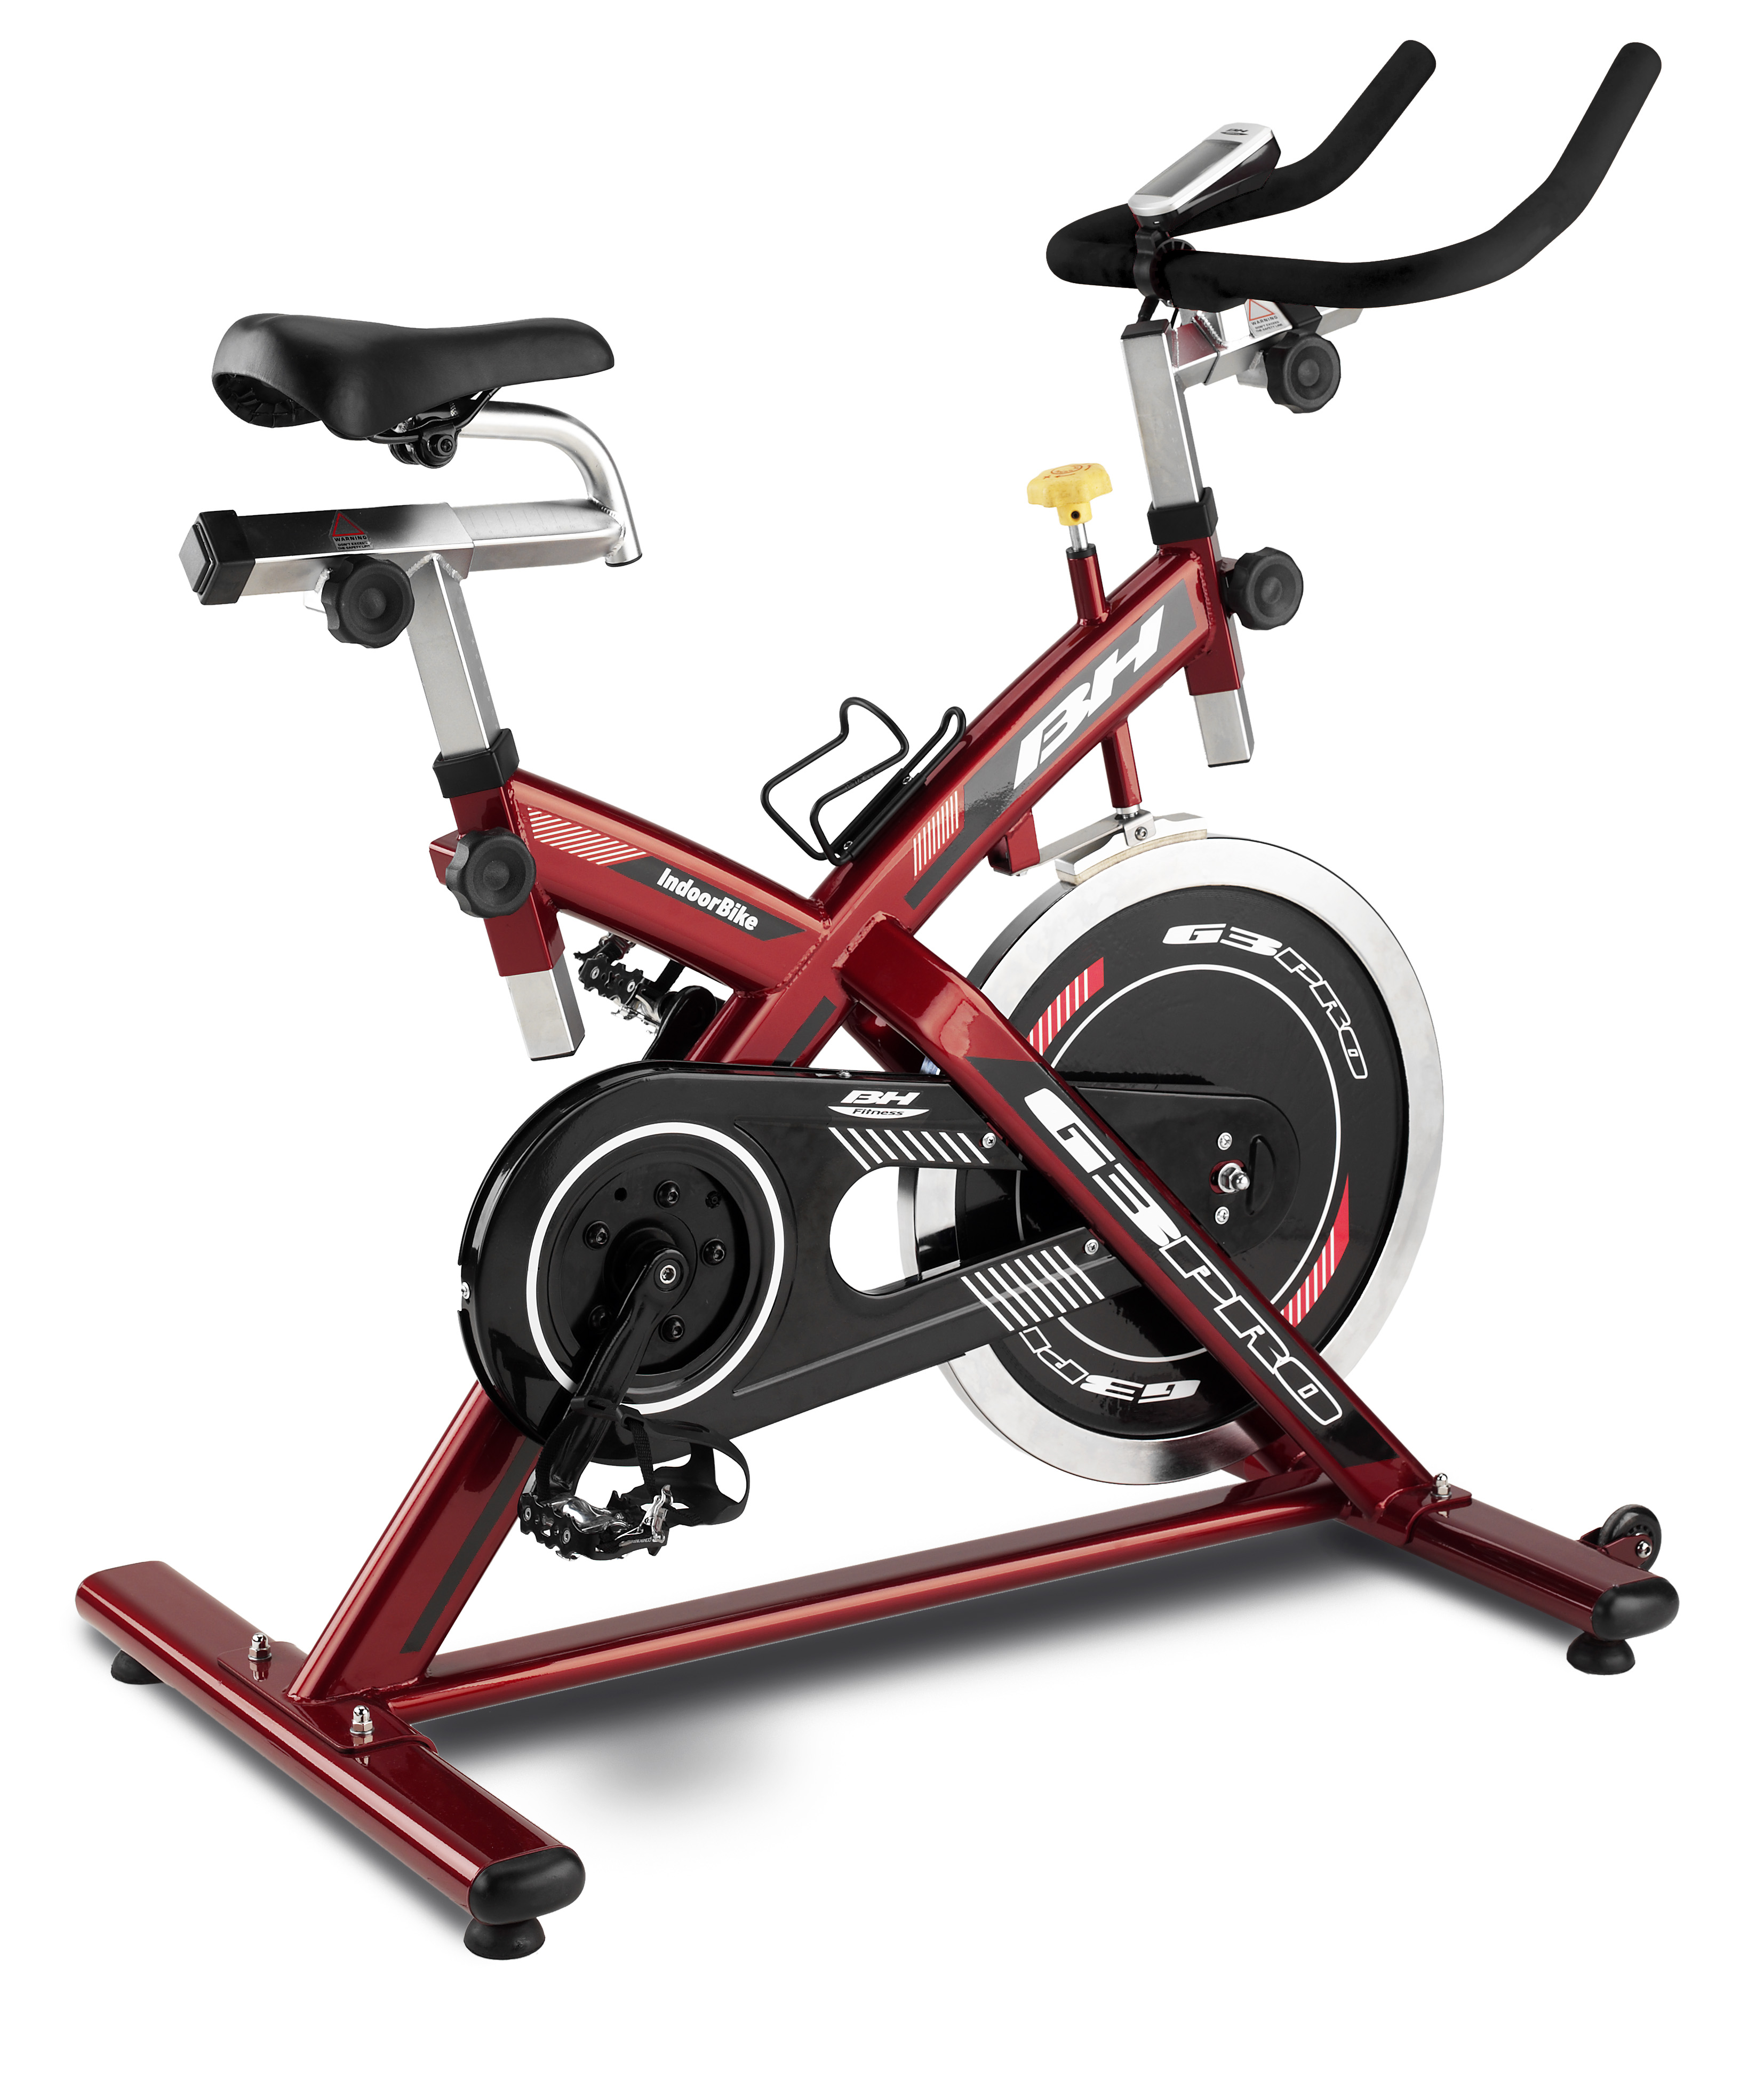 bh fitness g3 pro indoor bike indoor cycling magazin. Black Bedroom Furniture Sets. Home Design Ideas